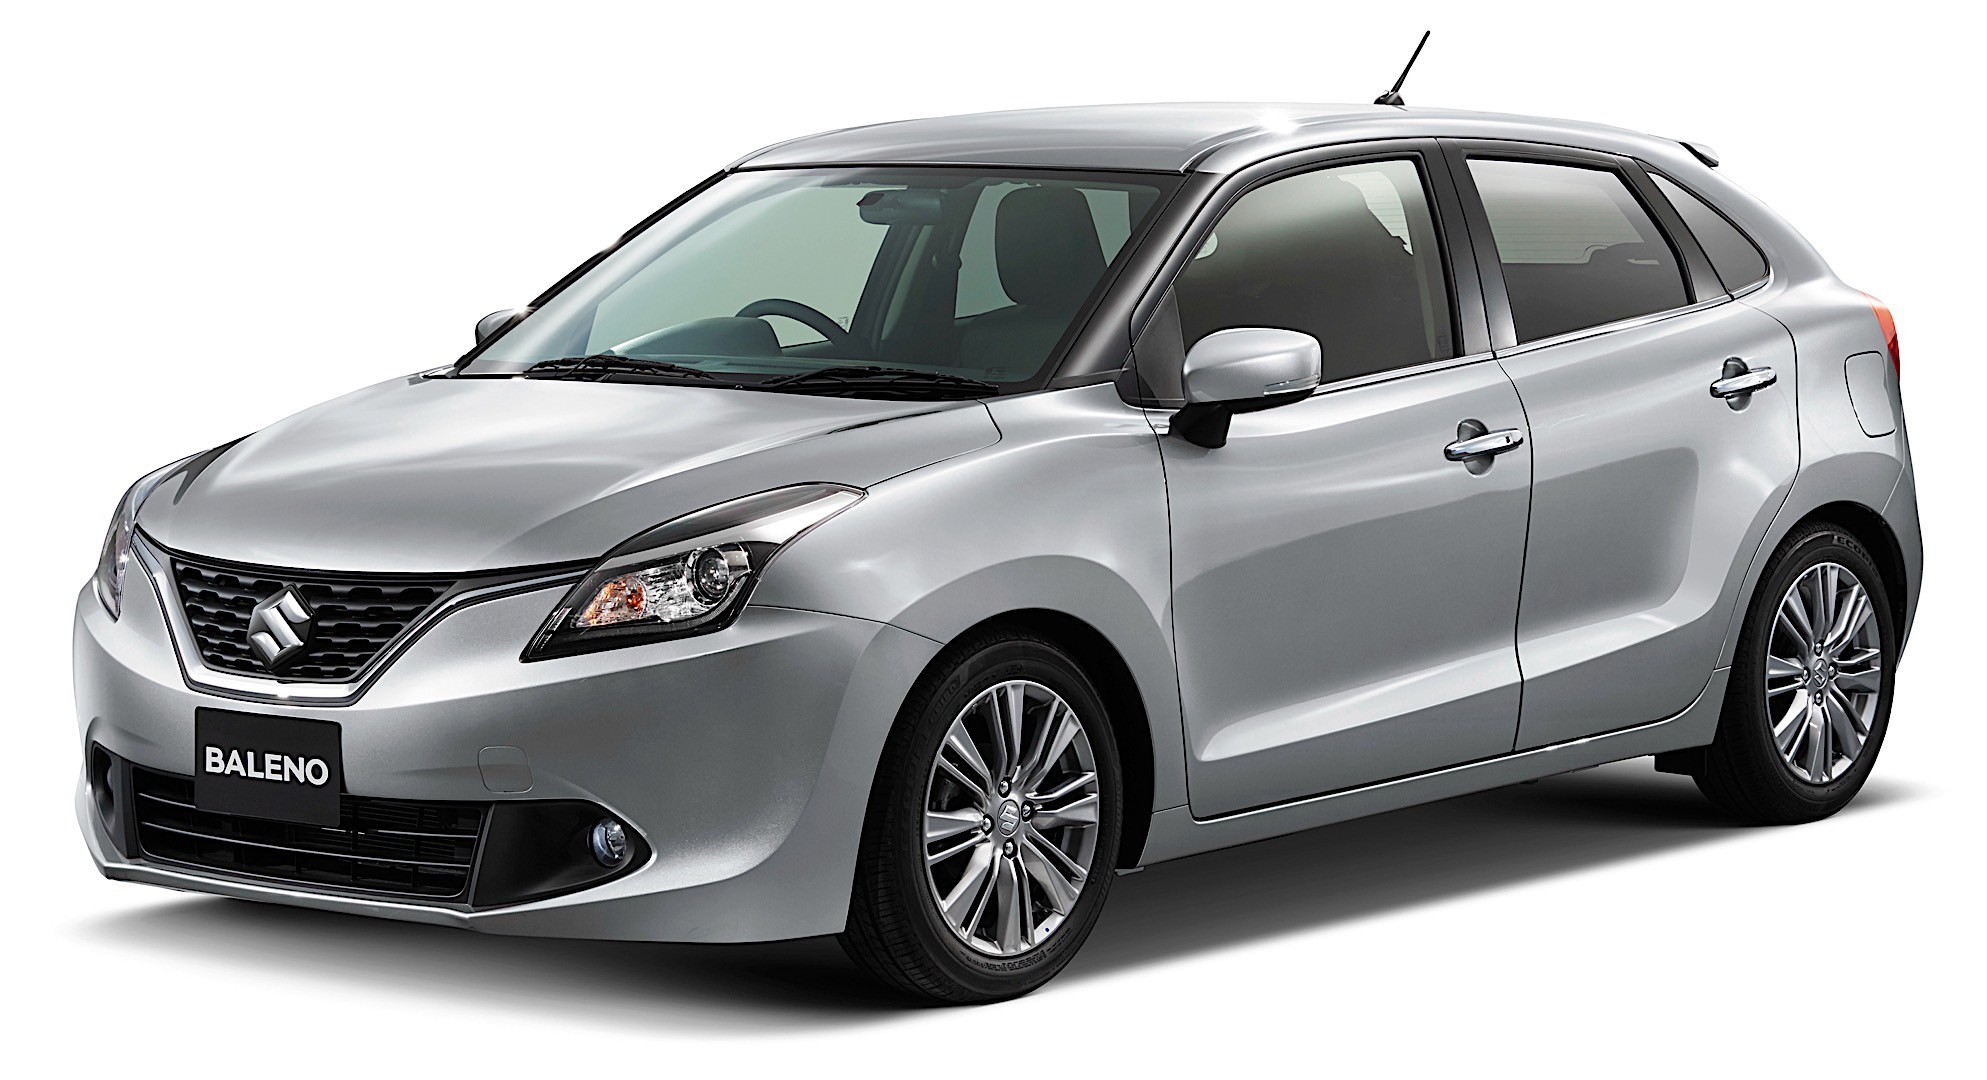 suzuki baleno 2016 autoevolution. Black Bedroom Furniture Sets. Home Design Ideas